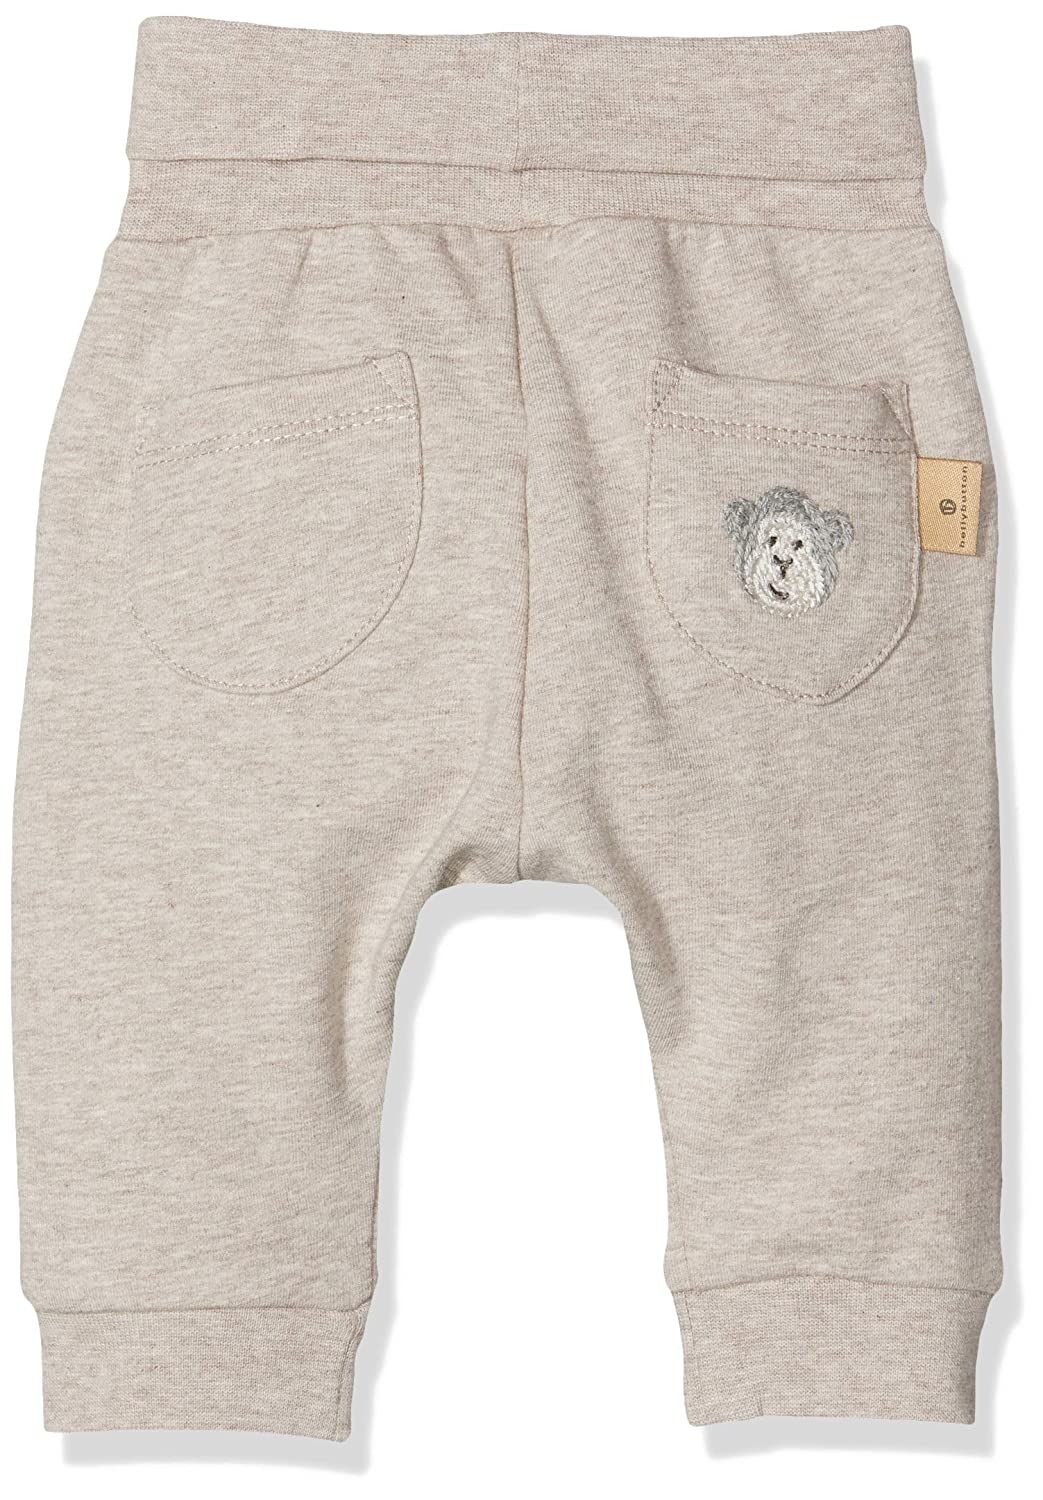 Bellybutton mother nature /& me Jogginghose Pantaloni Sportivi Unisex-Bimbi